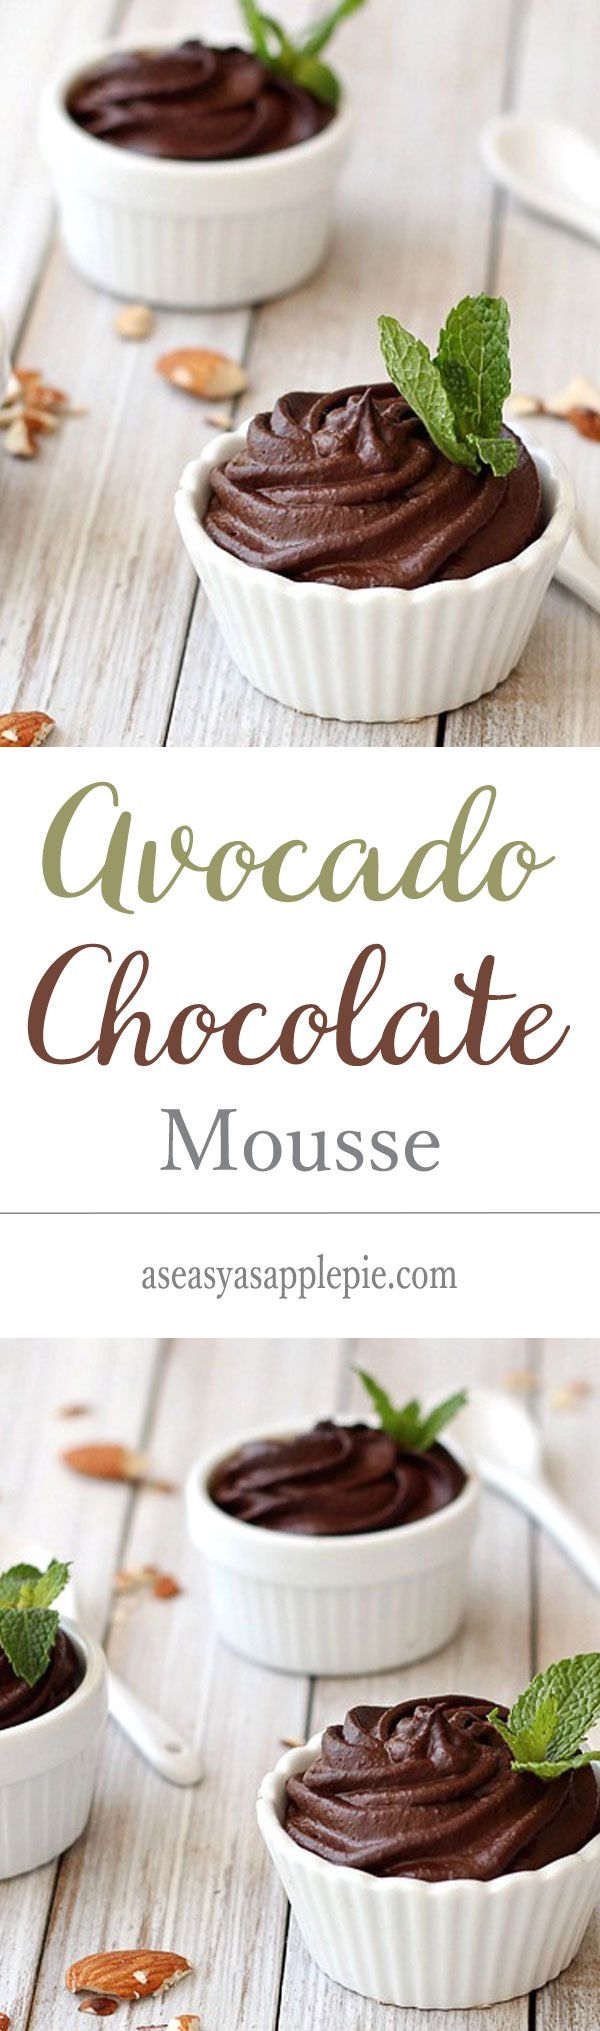 This Avocado Chocolate Mousse is a combination of healthy and delicious ingredients that come together to create a dense and rich mousse. A gluten-free, dairy-free, vegan dessert